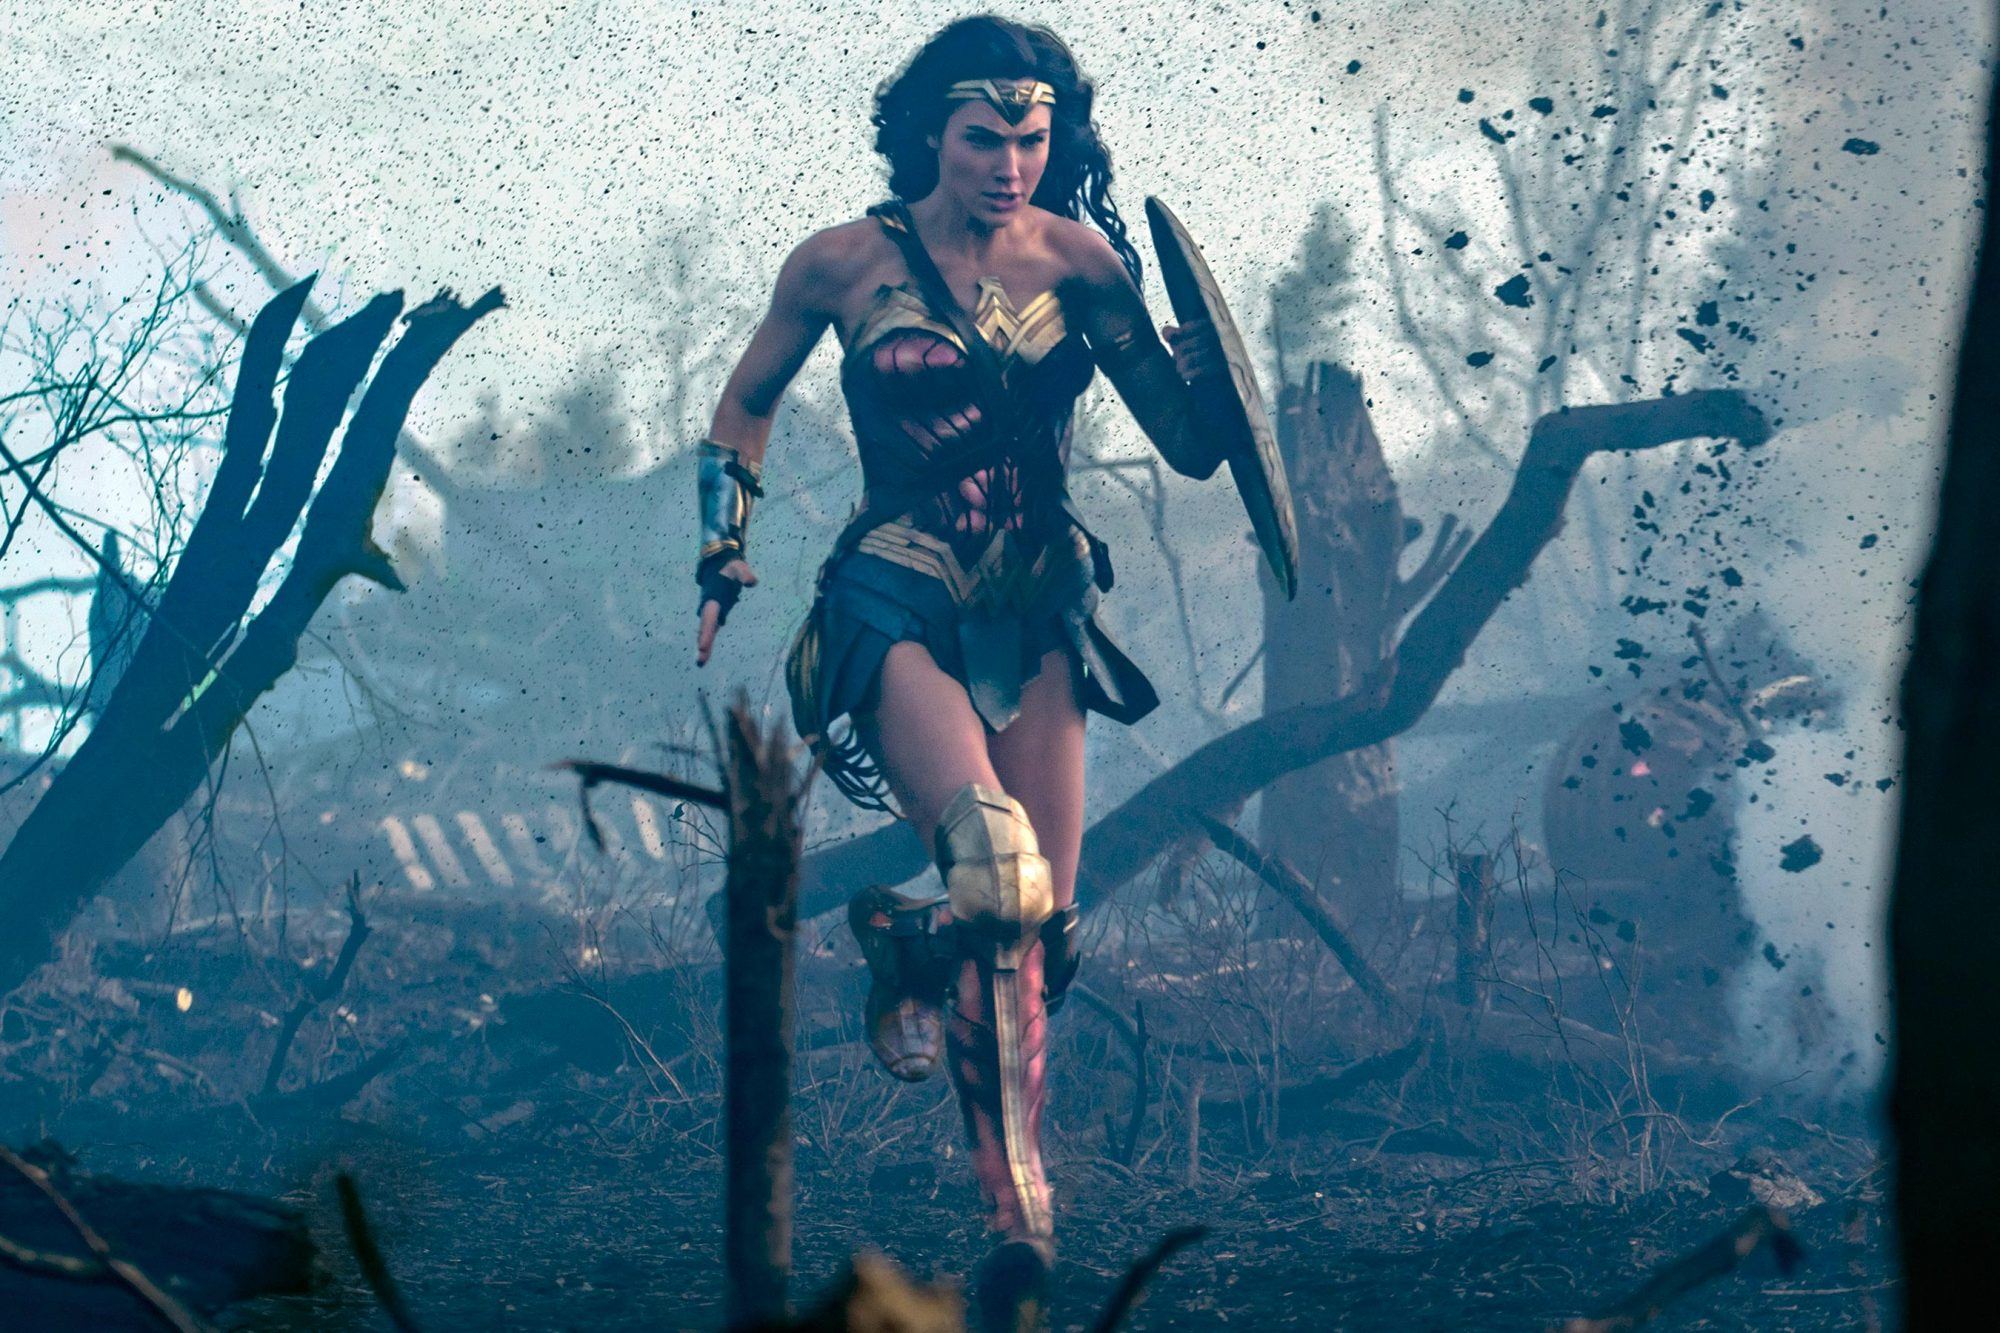 SNUB: Wonder Woman for Best Picture